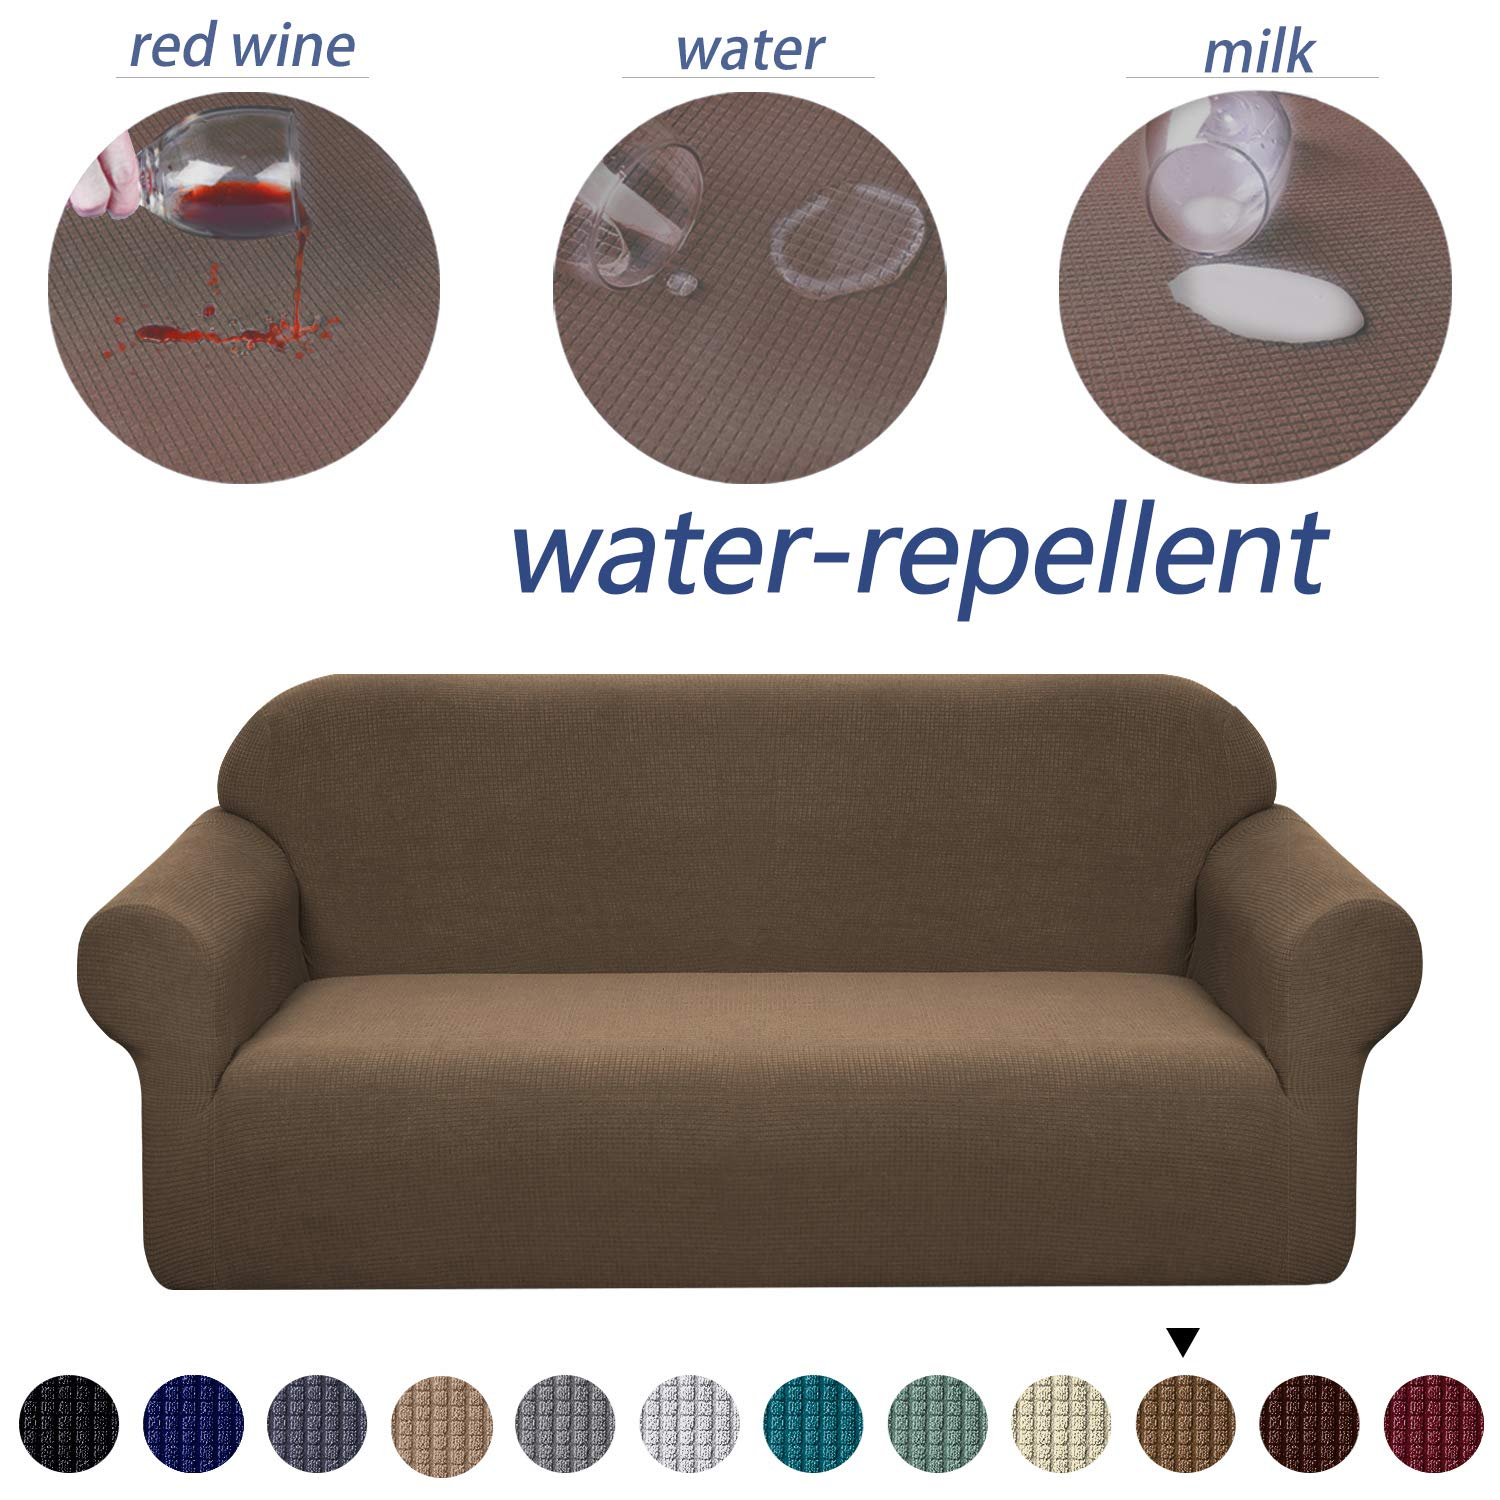 Granbest Premium Water Repellent Sofa Cover High Stretch Couch Slipcover Super Soft Fabric Couch Cover (Coffee, Sofa)